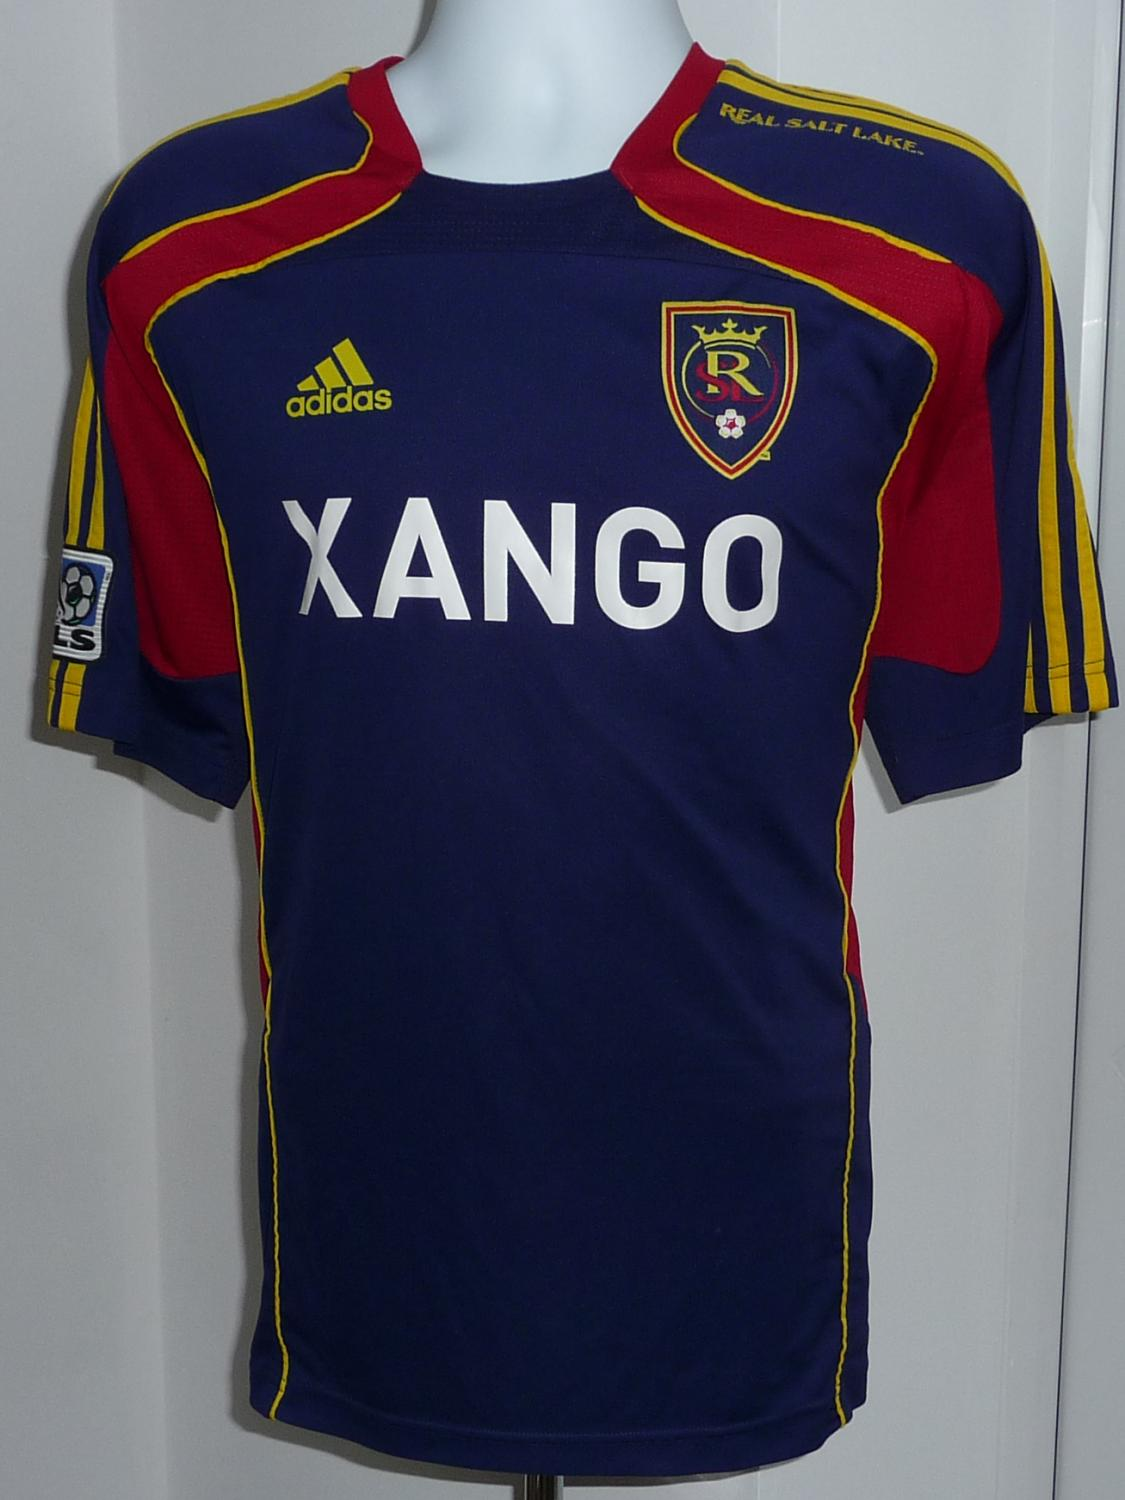 finest selection b6cf8 532f5 Real Salt Lake Training/Leisure Maillot de foot (unknown year).